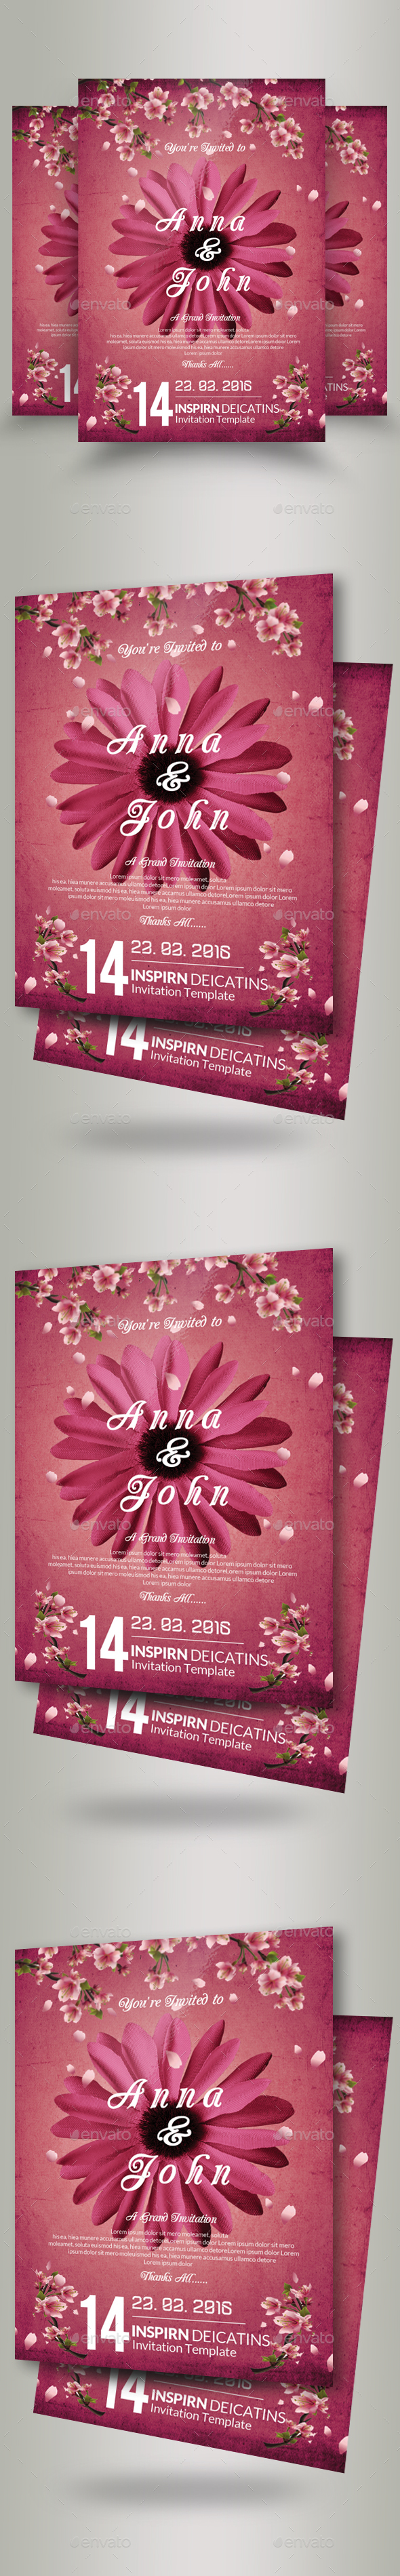 Wedding Invitation Flyer Template - Flyers Print Templates